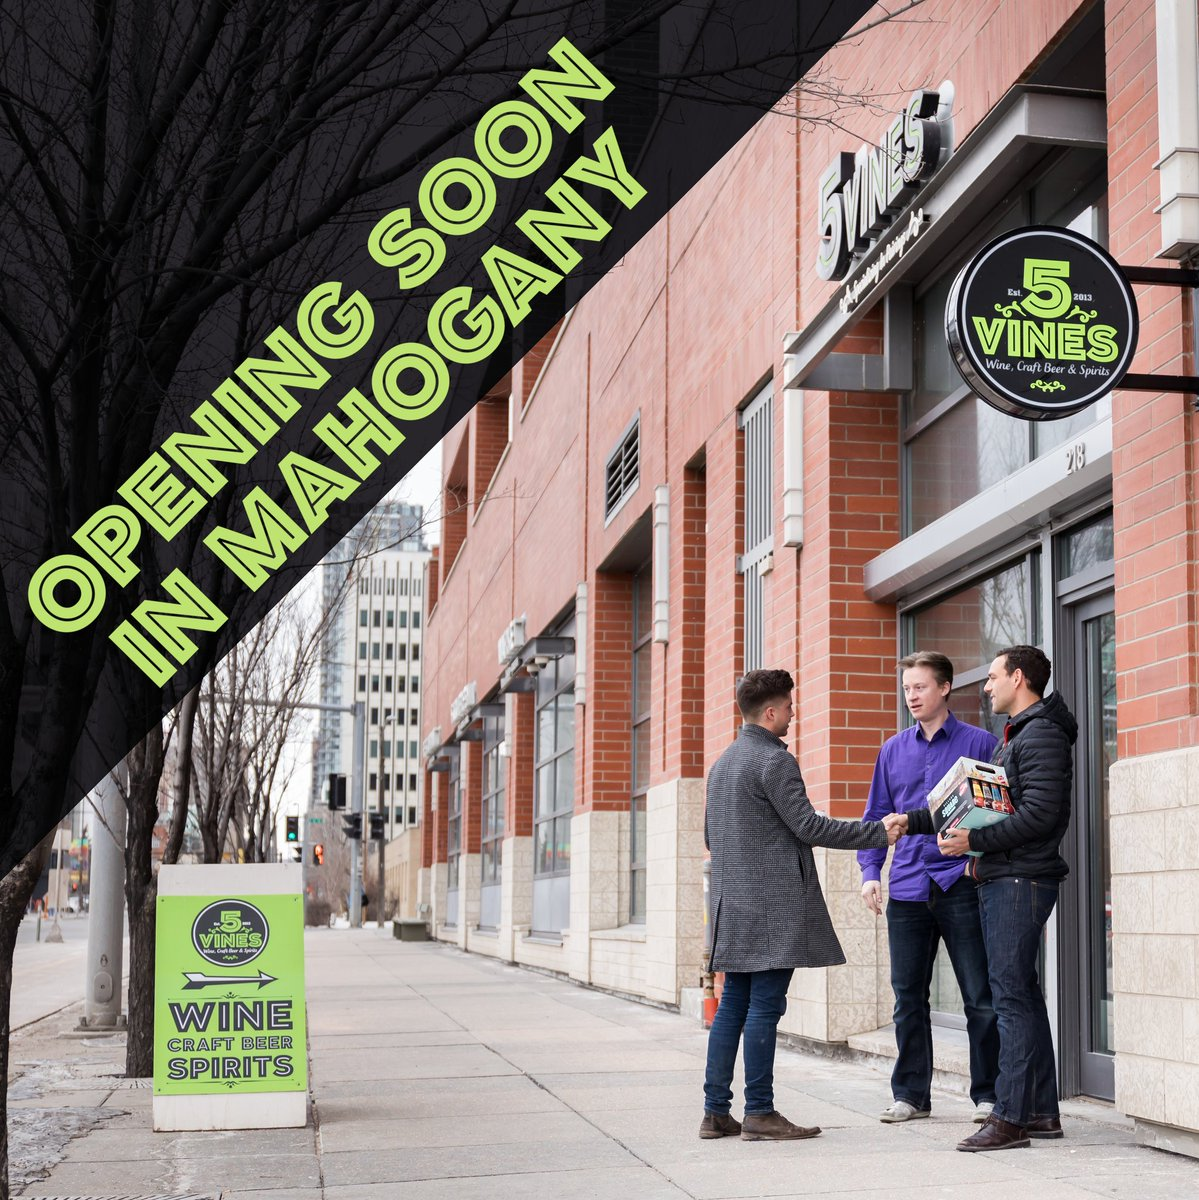 Hey #Calgary! We have something exciting to share with you!  In only a few weeks, we'll be opening the doors to our 2nd location in the exciting community of Mahogany at @westmanvillage. Keep posted for updates!😃